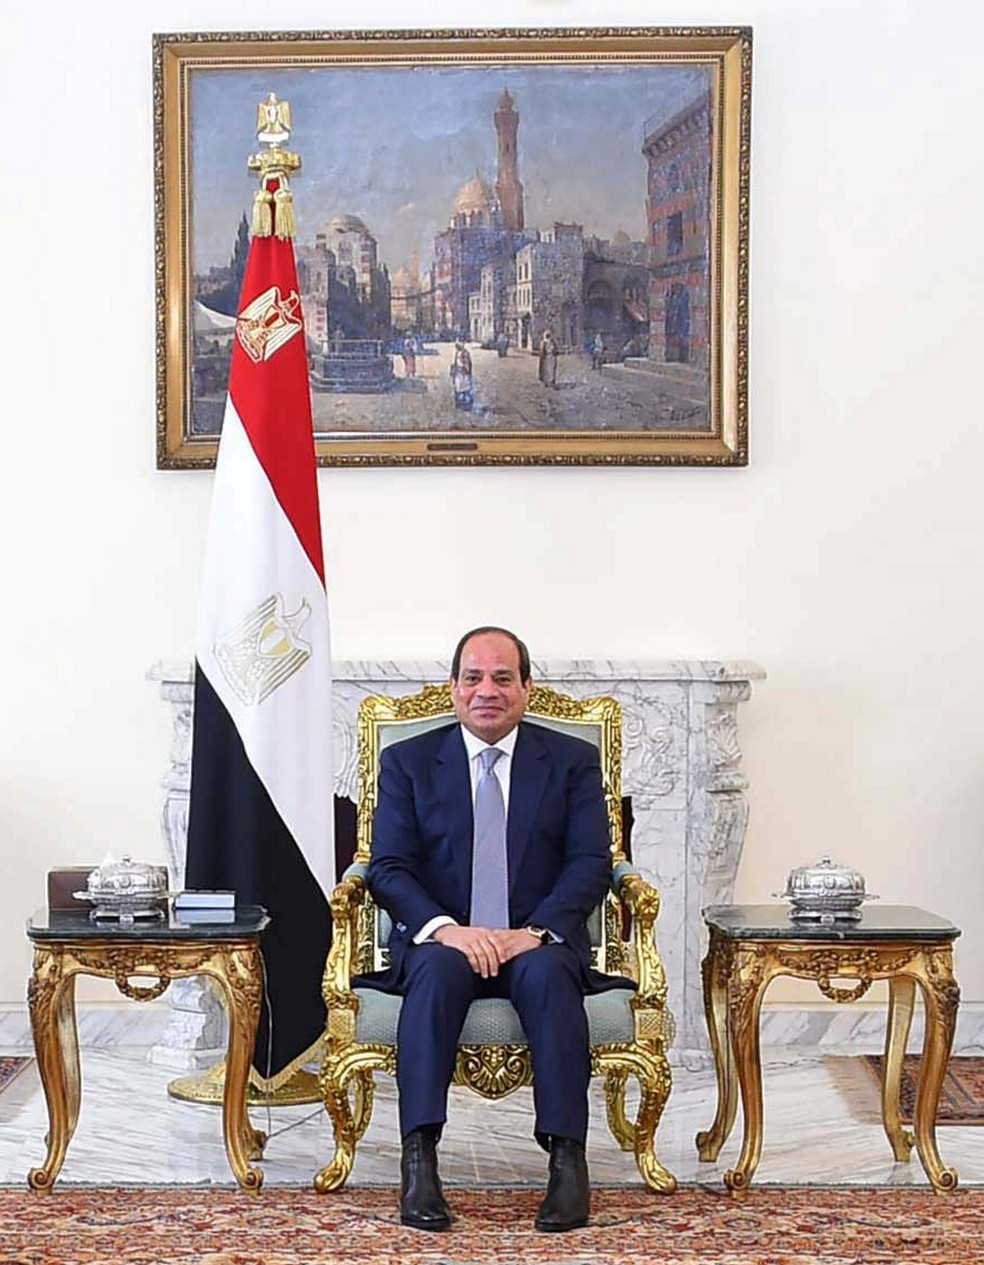 -  O presidente do Egito, Abdel Fattah al-Sisi, no palácio presidencial, no Cairo  Foto: The Egyptian Presidency/Handout via REUTERS